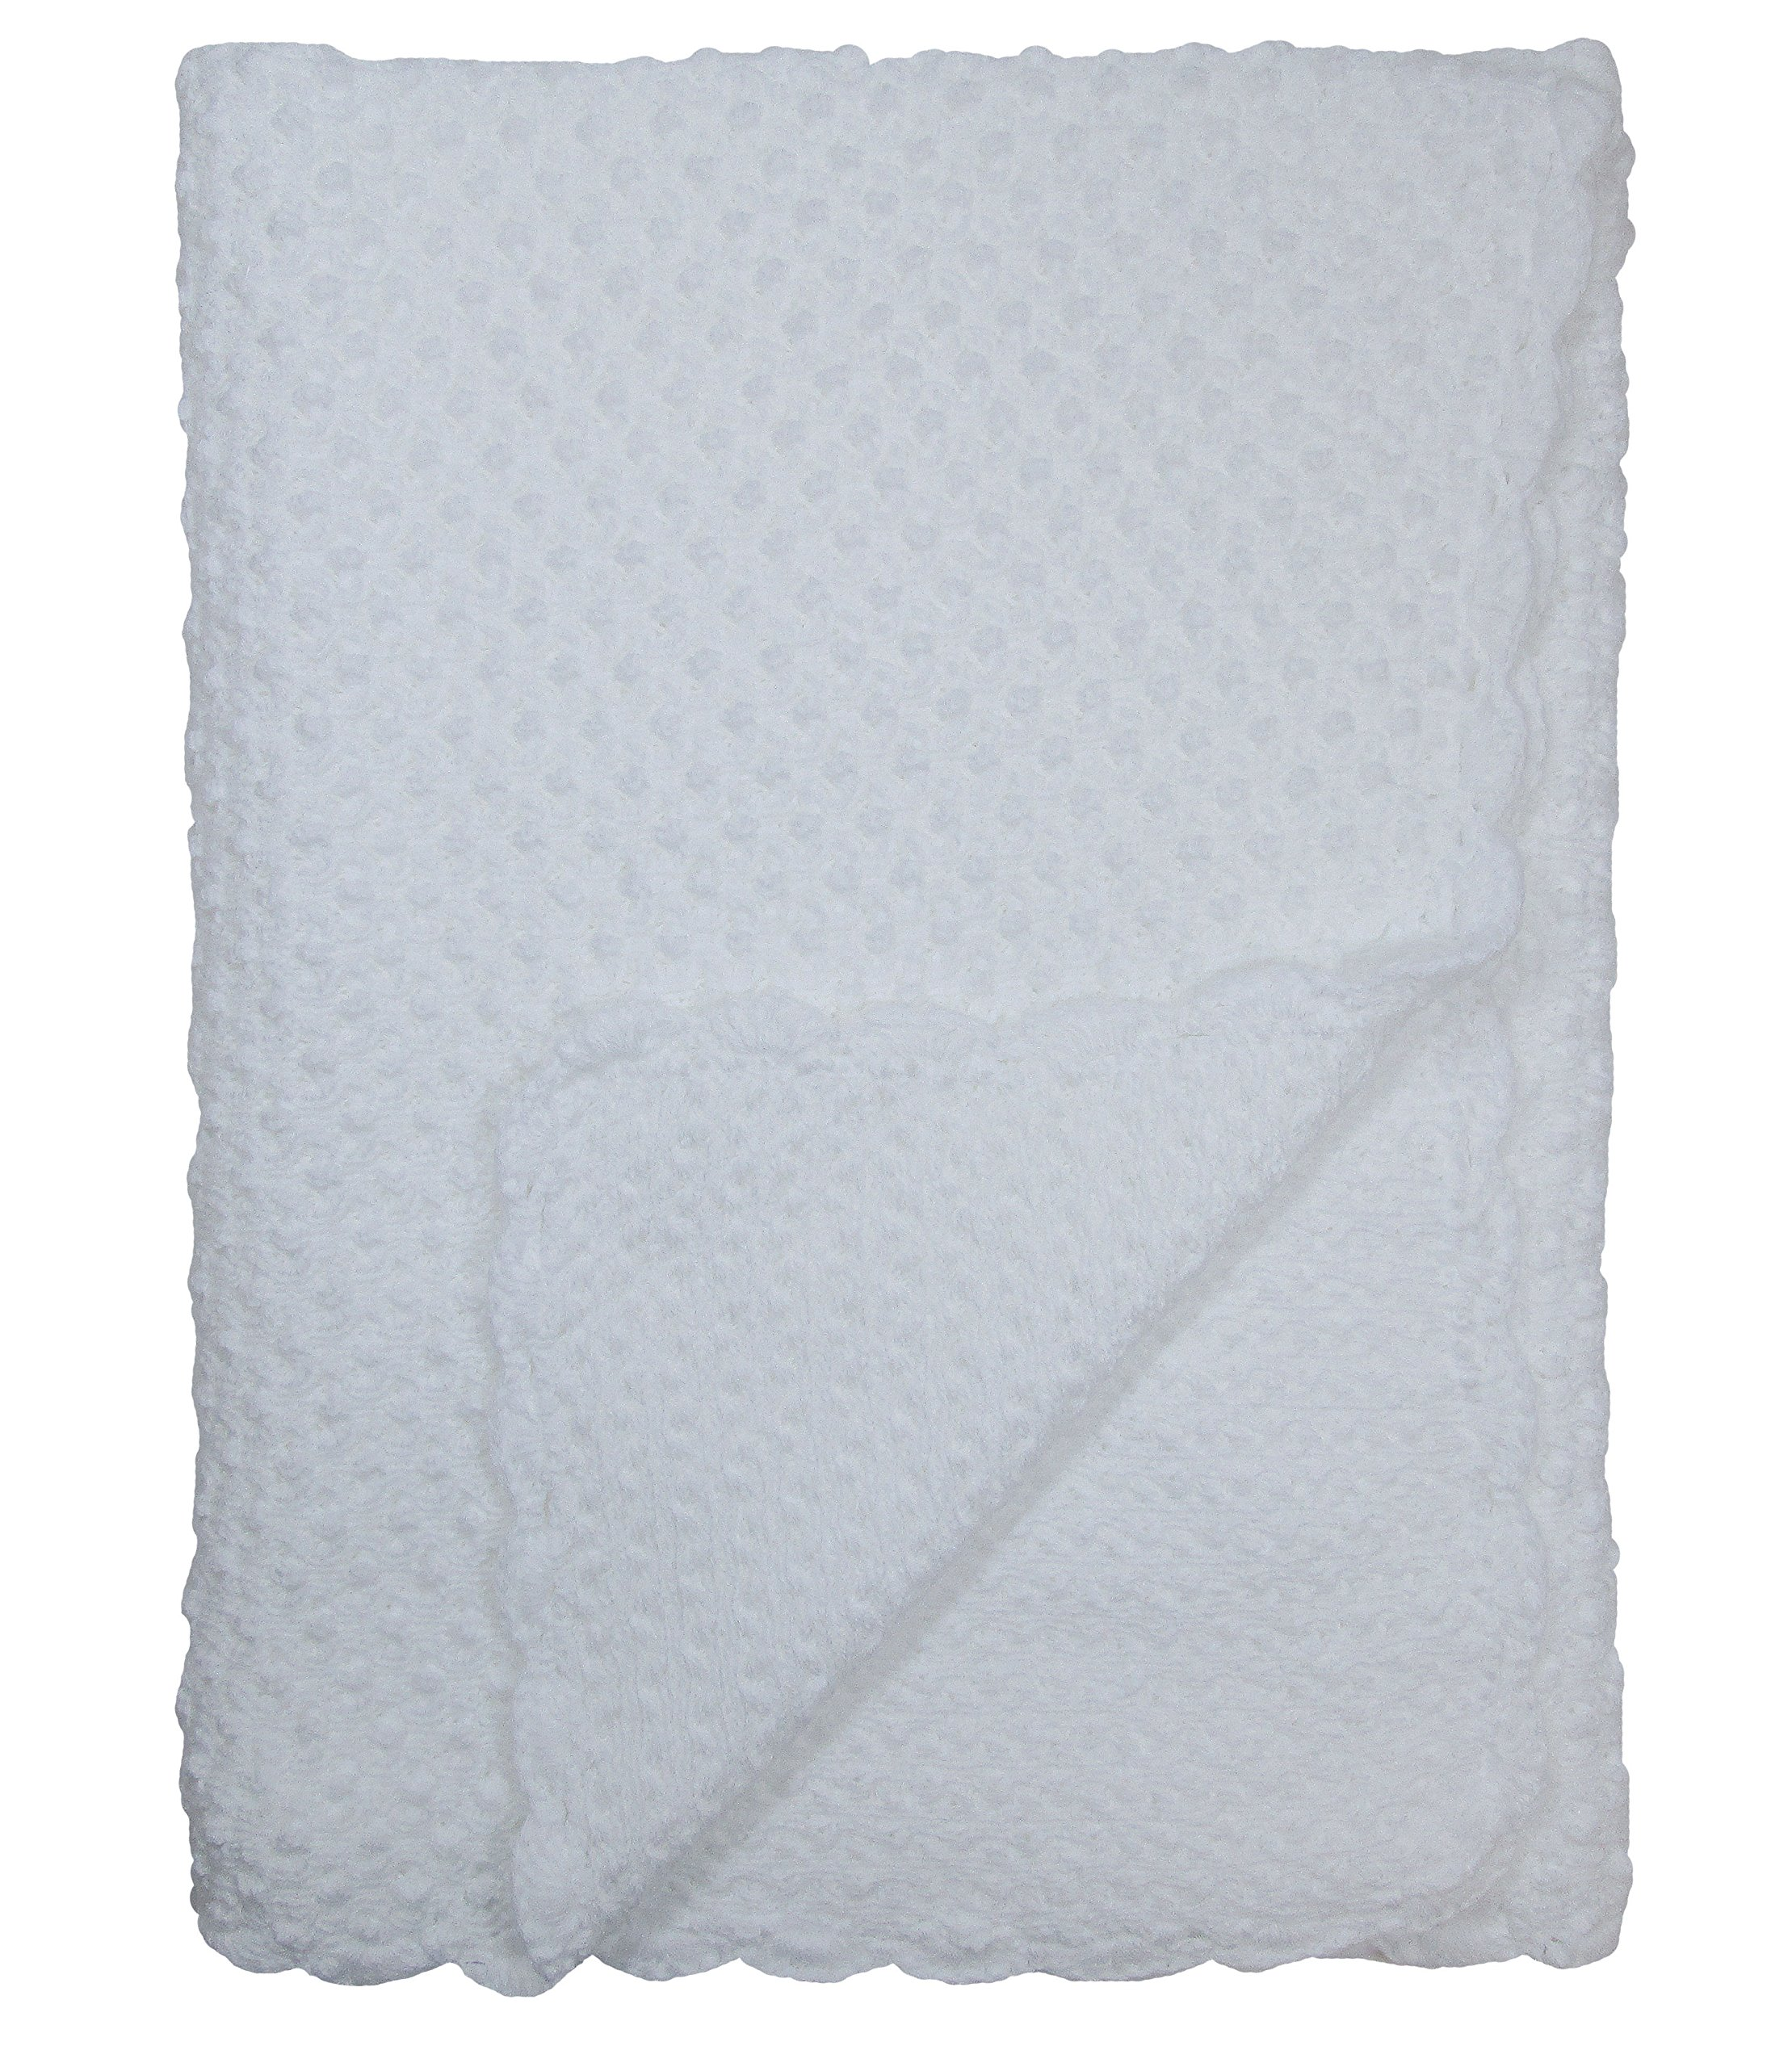 Baby Fancy Christening White Hand Crochet 100% Cotton Shawl/Blanket 34 x 30 in - Bubble by Christening Day